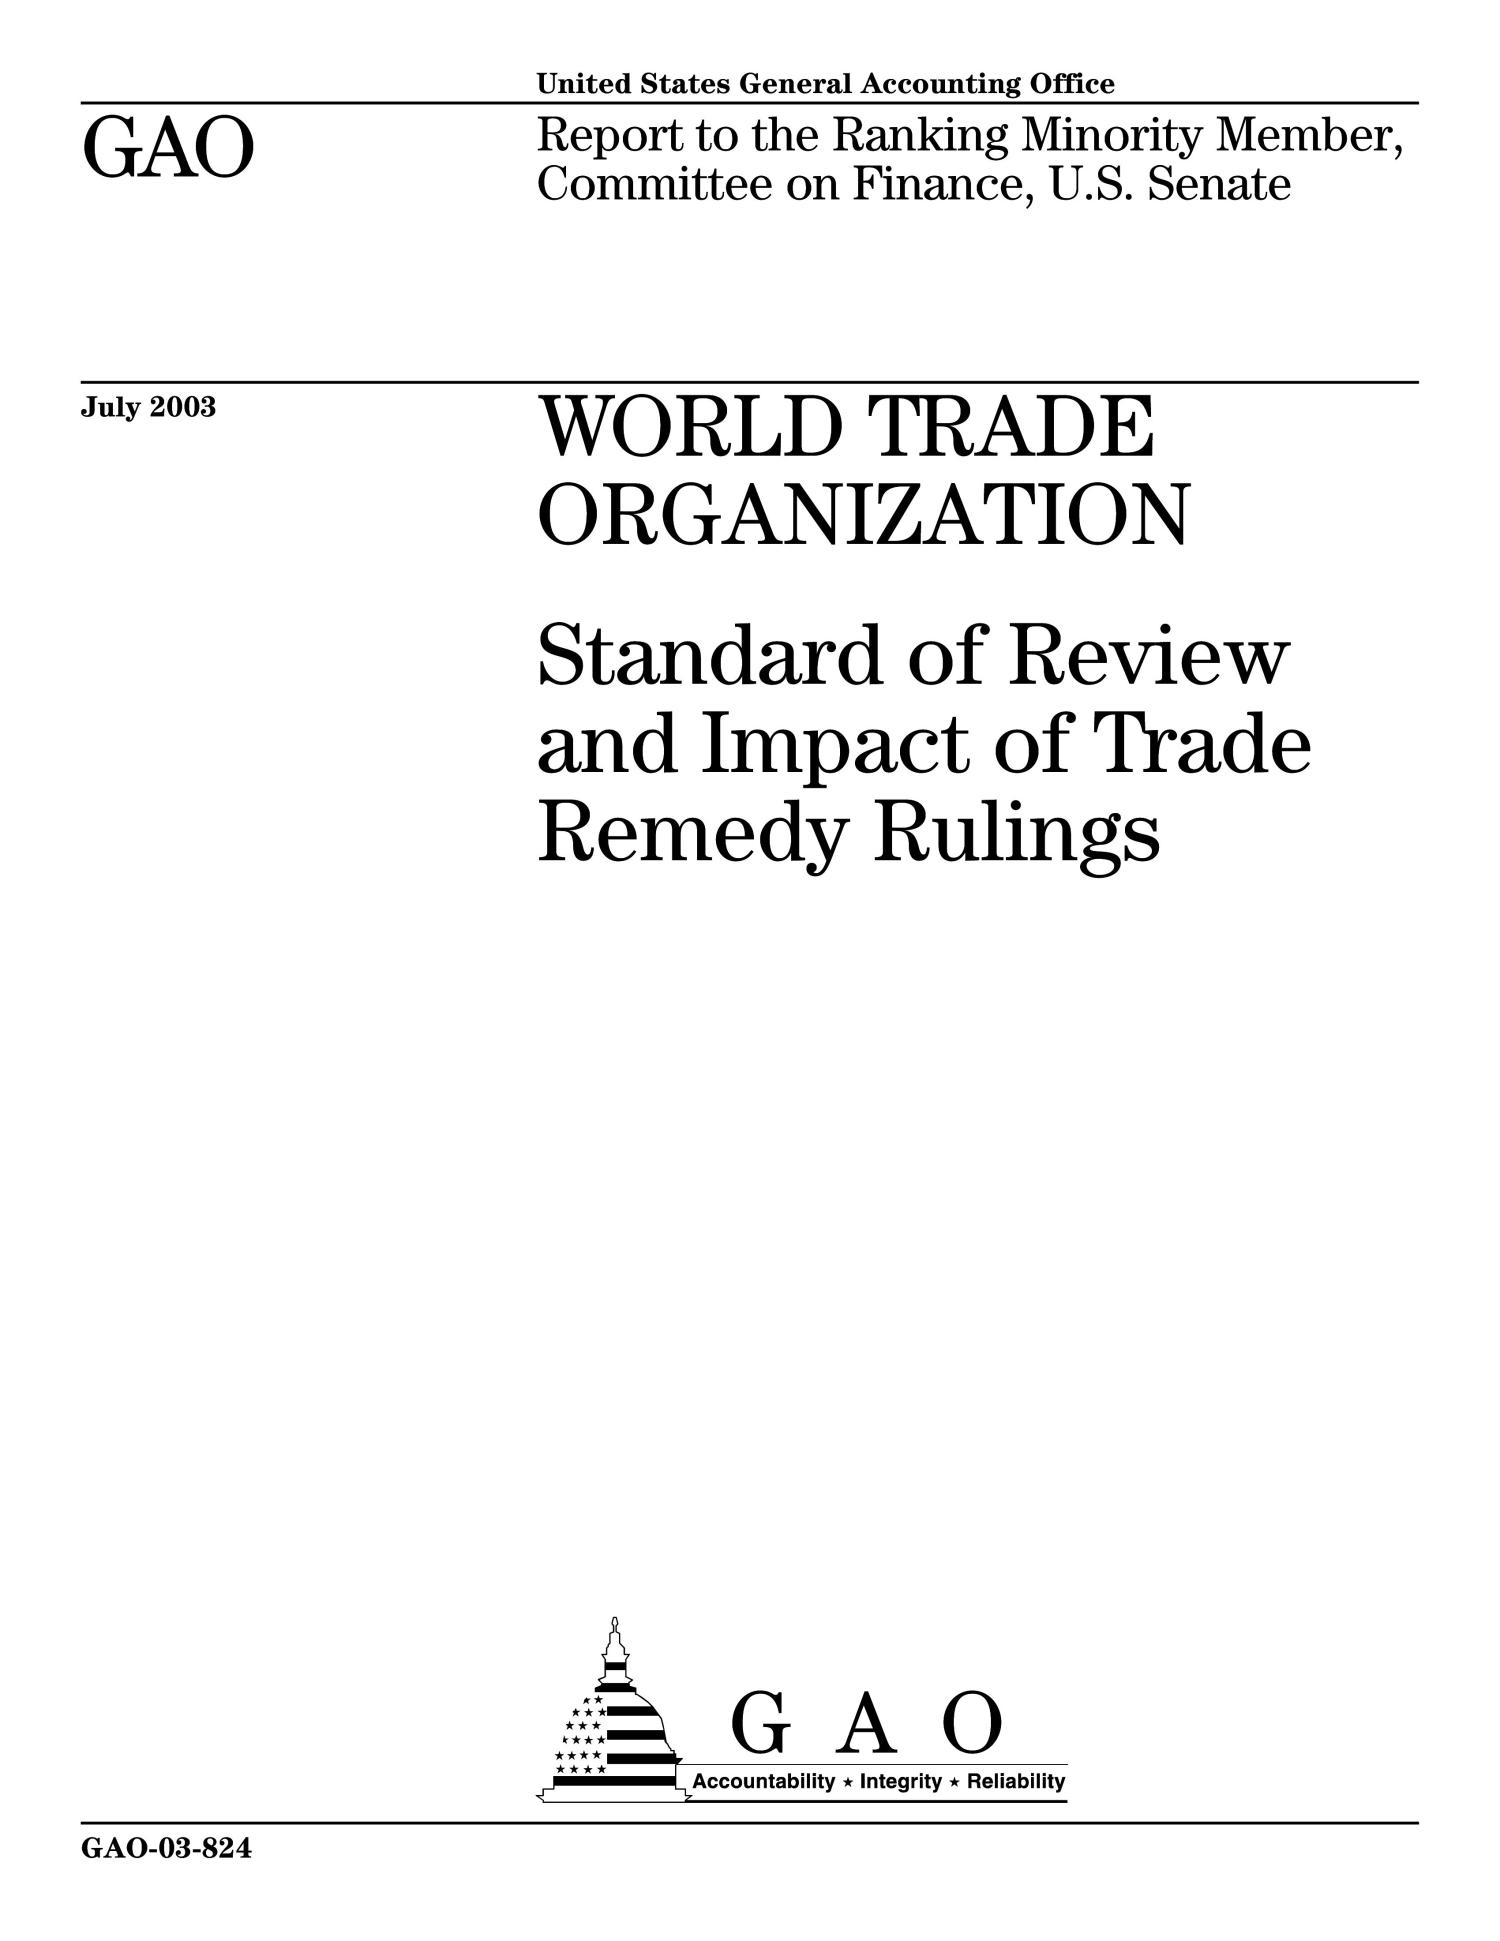 World Trade Organization: Standard of Review and Impact of Trade Remedy Rulings                                                                                                      [Sequence #]: 1 of 128